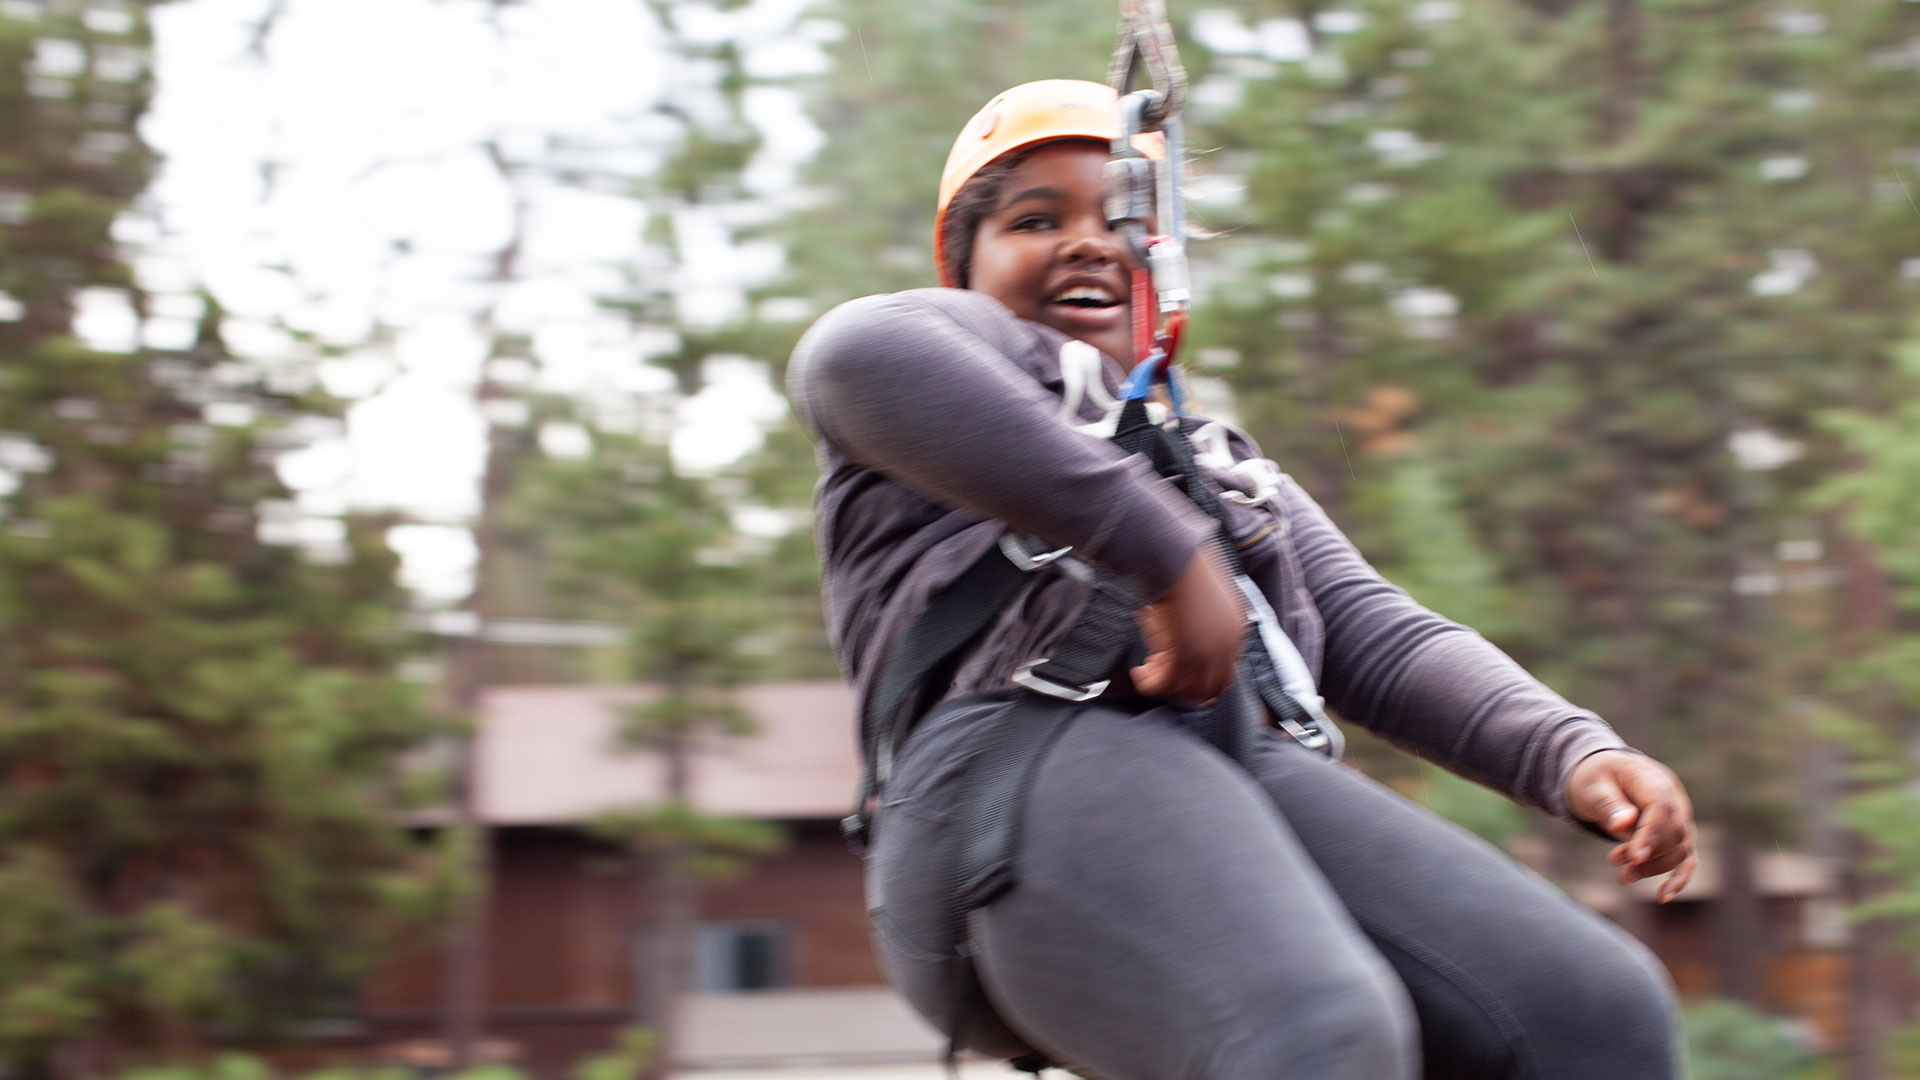 girl smiling on zipline in forest